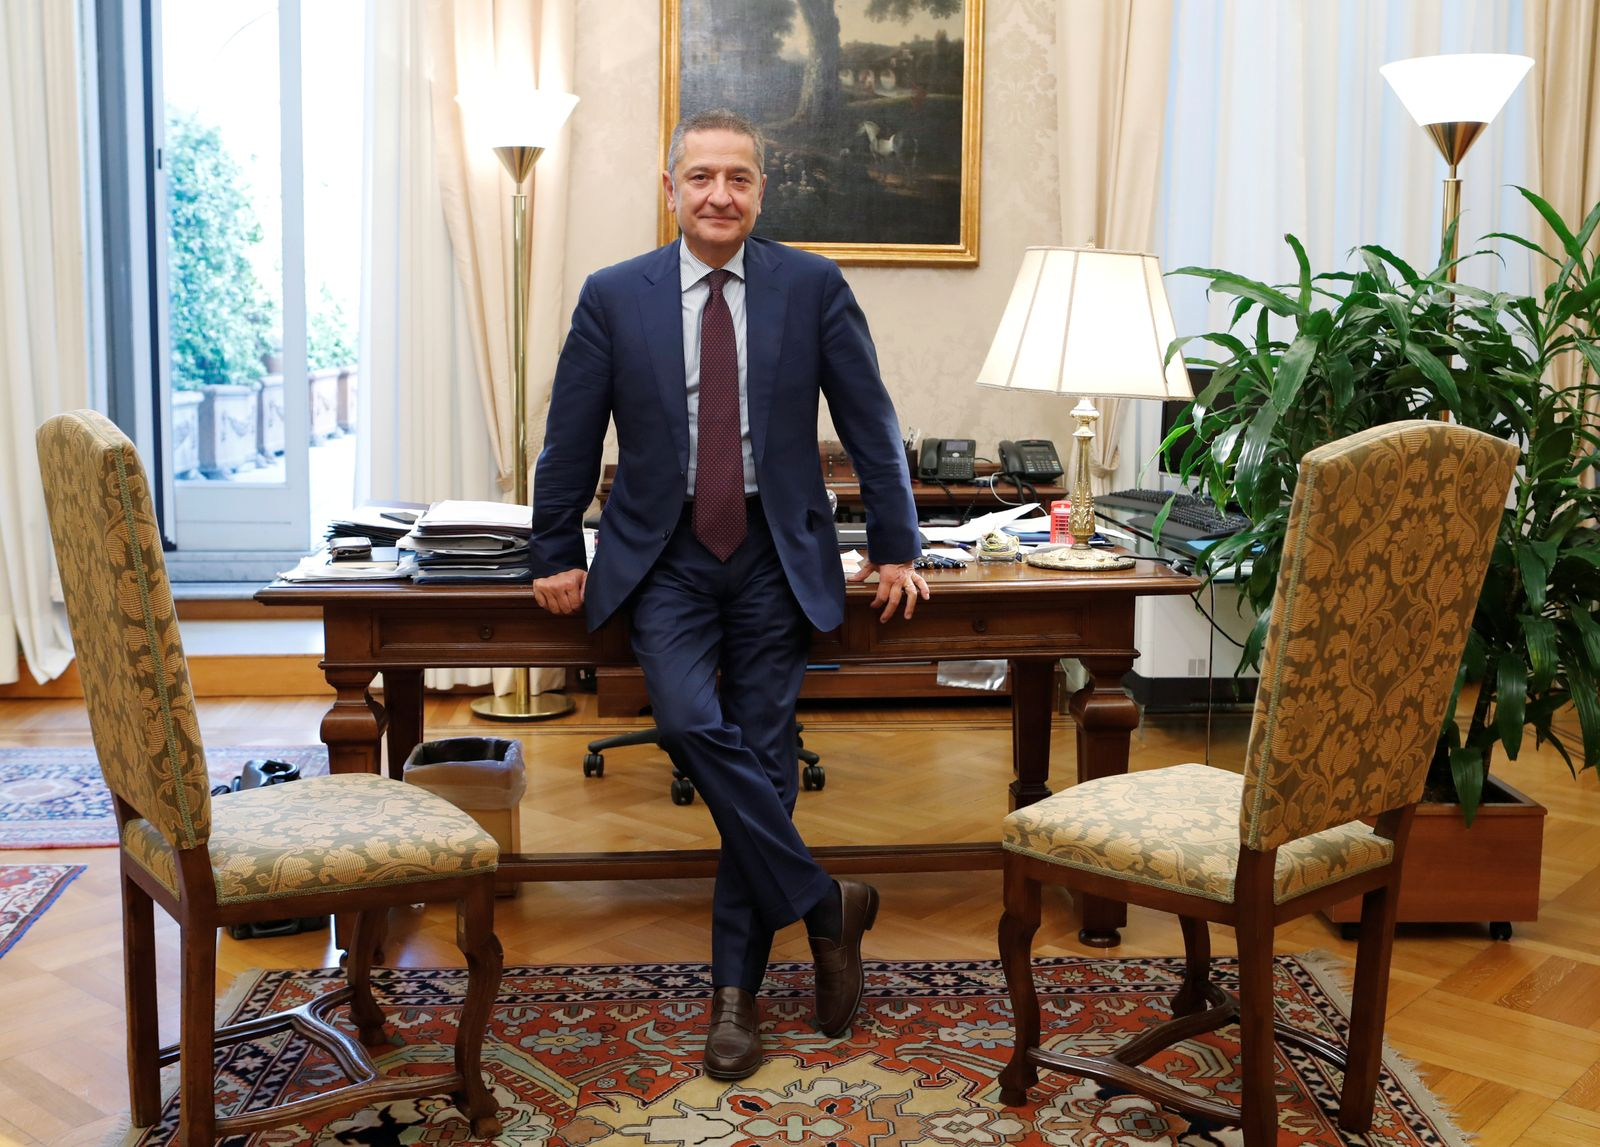 FILE PHOTO: Fabio Panetta is seen in his office ahead of his appointment to the European Central Bank's executive committee